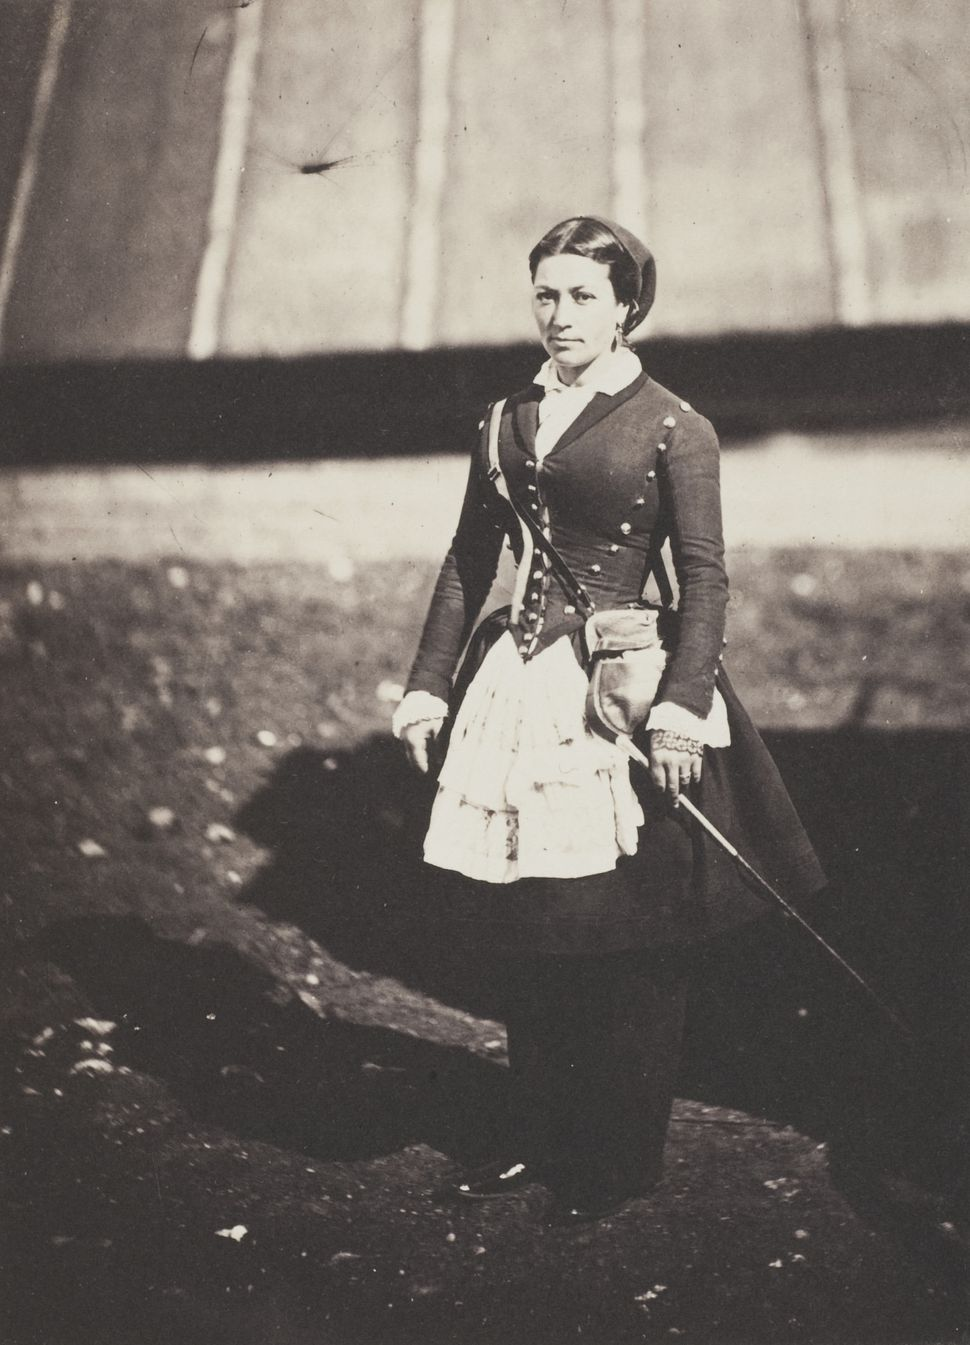 Roger Fenton Cantiniére 1855 Photograph, salted paper print from a glass plate negative © Wilson Centre for Photography